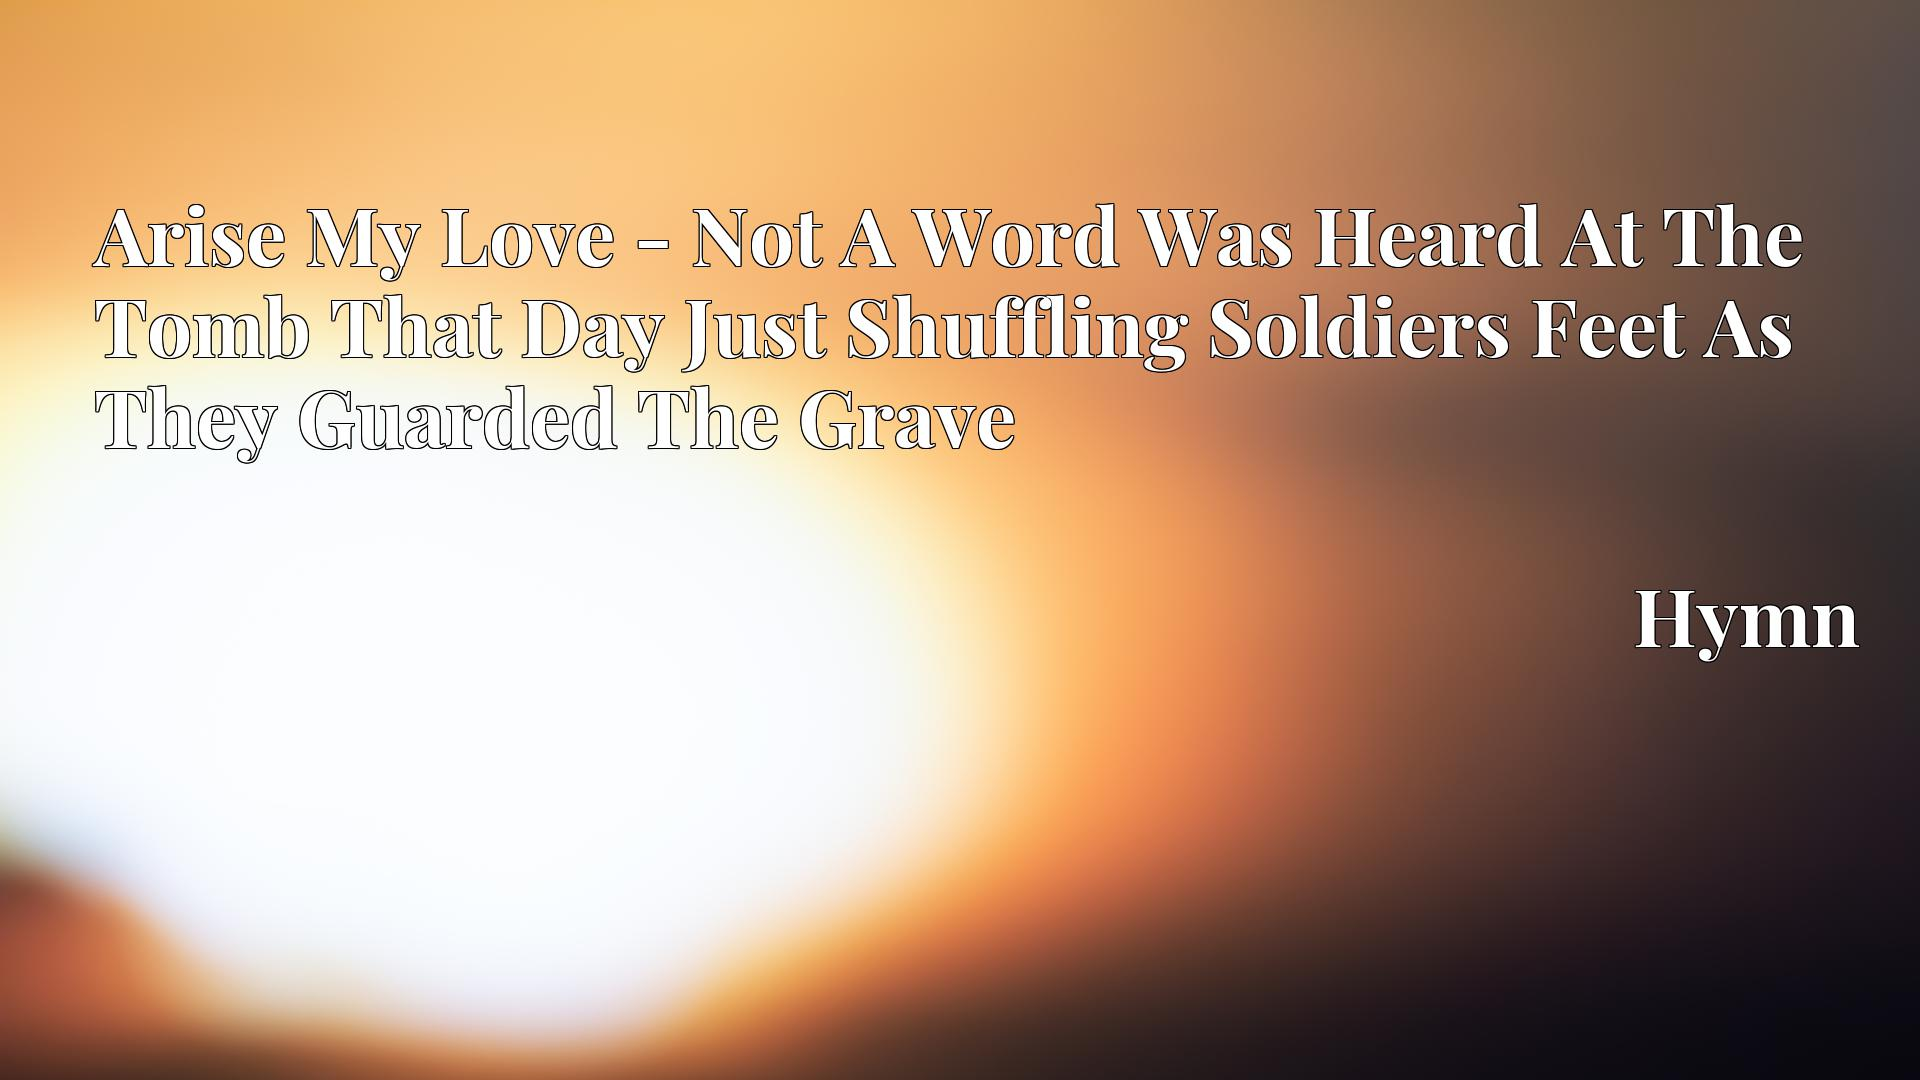 Arise My Love - Not A Word Was Heard At The Tomb That Day Just Shuffling Soldiers Feet As They Guarded The Grave - Hymn